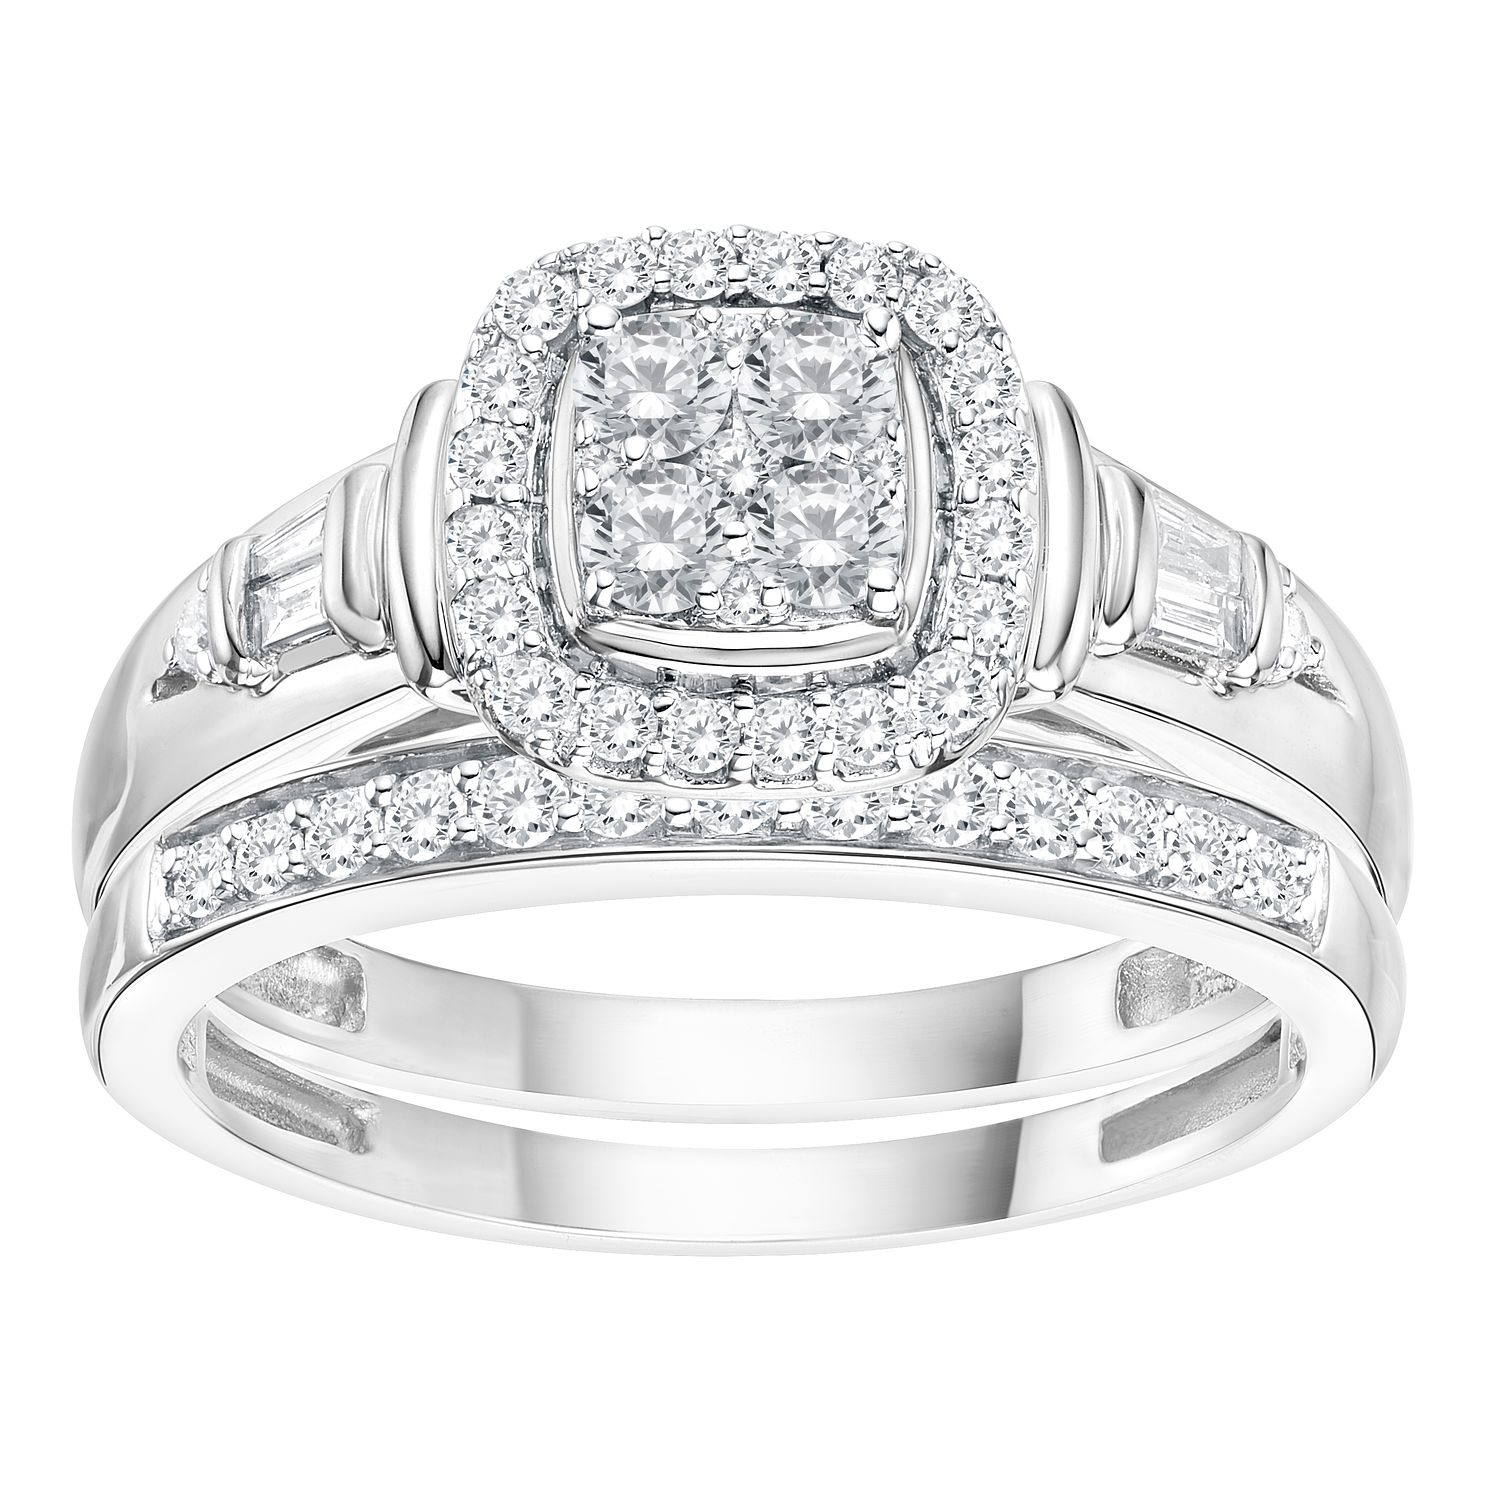 whiteview staircase engagement ring login create to cut multi rings princess cinderella earn account an points or stone